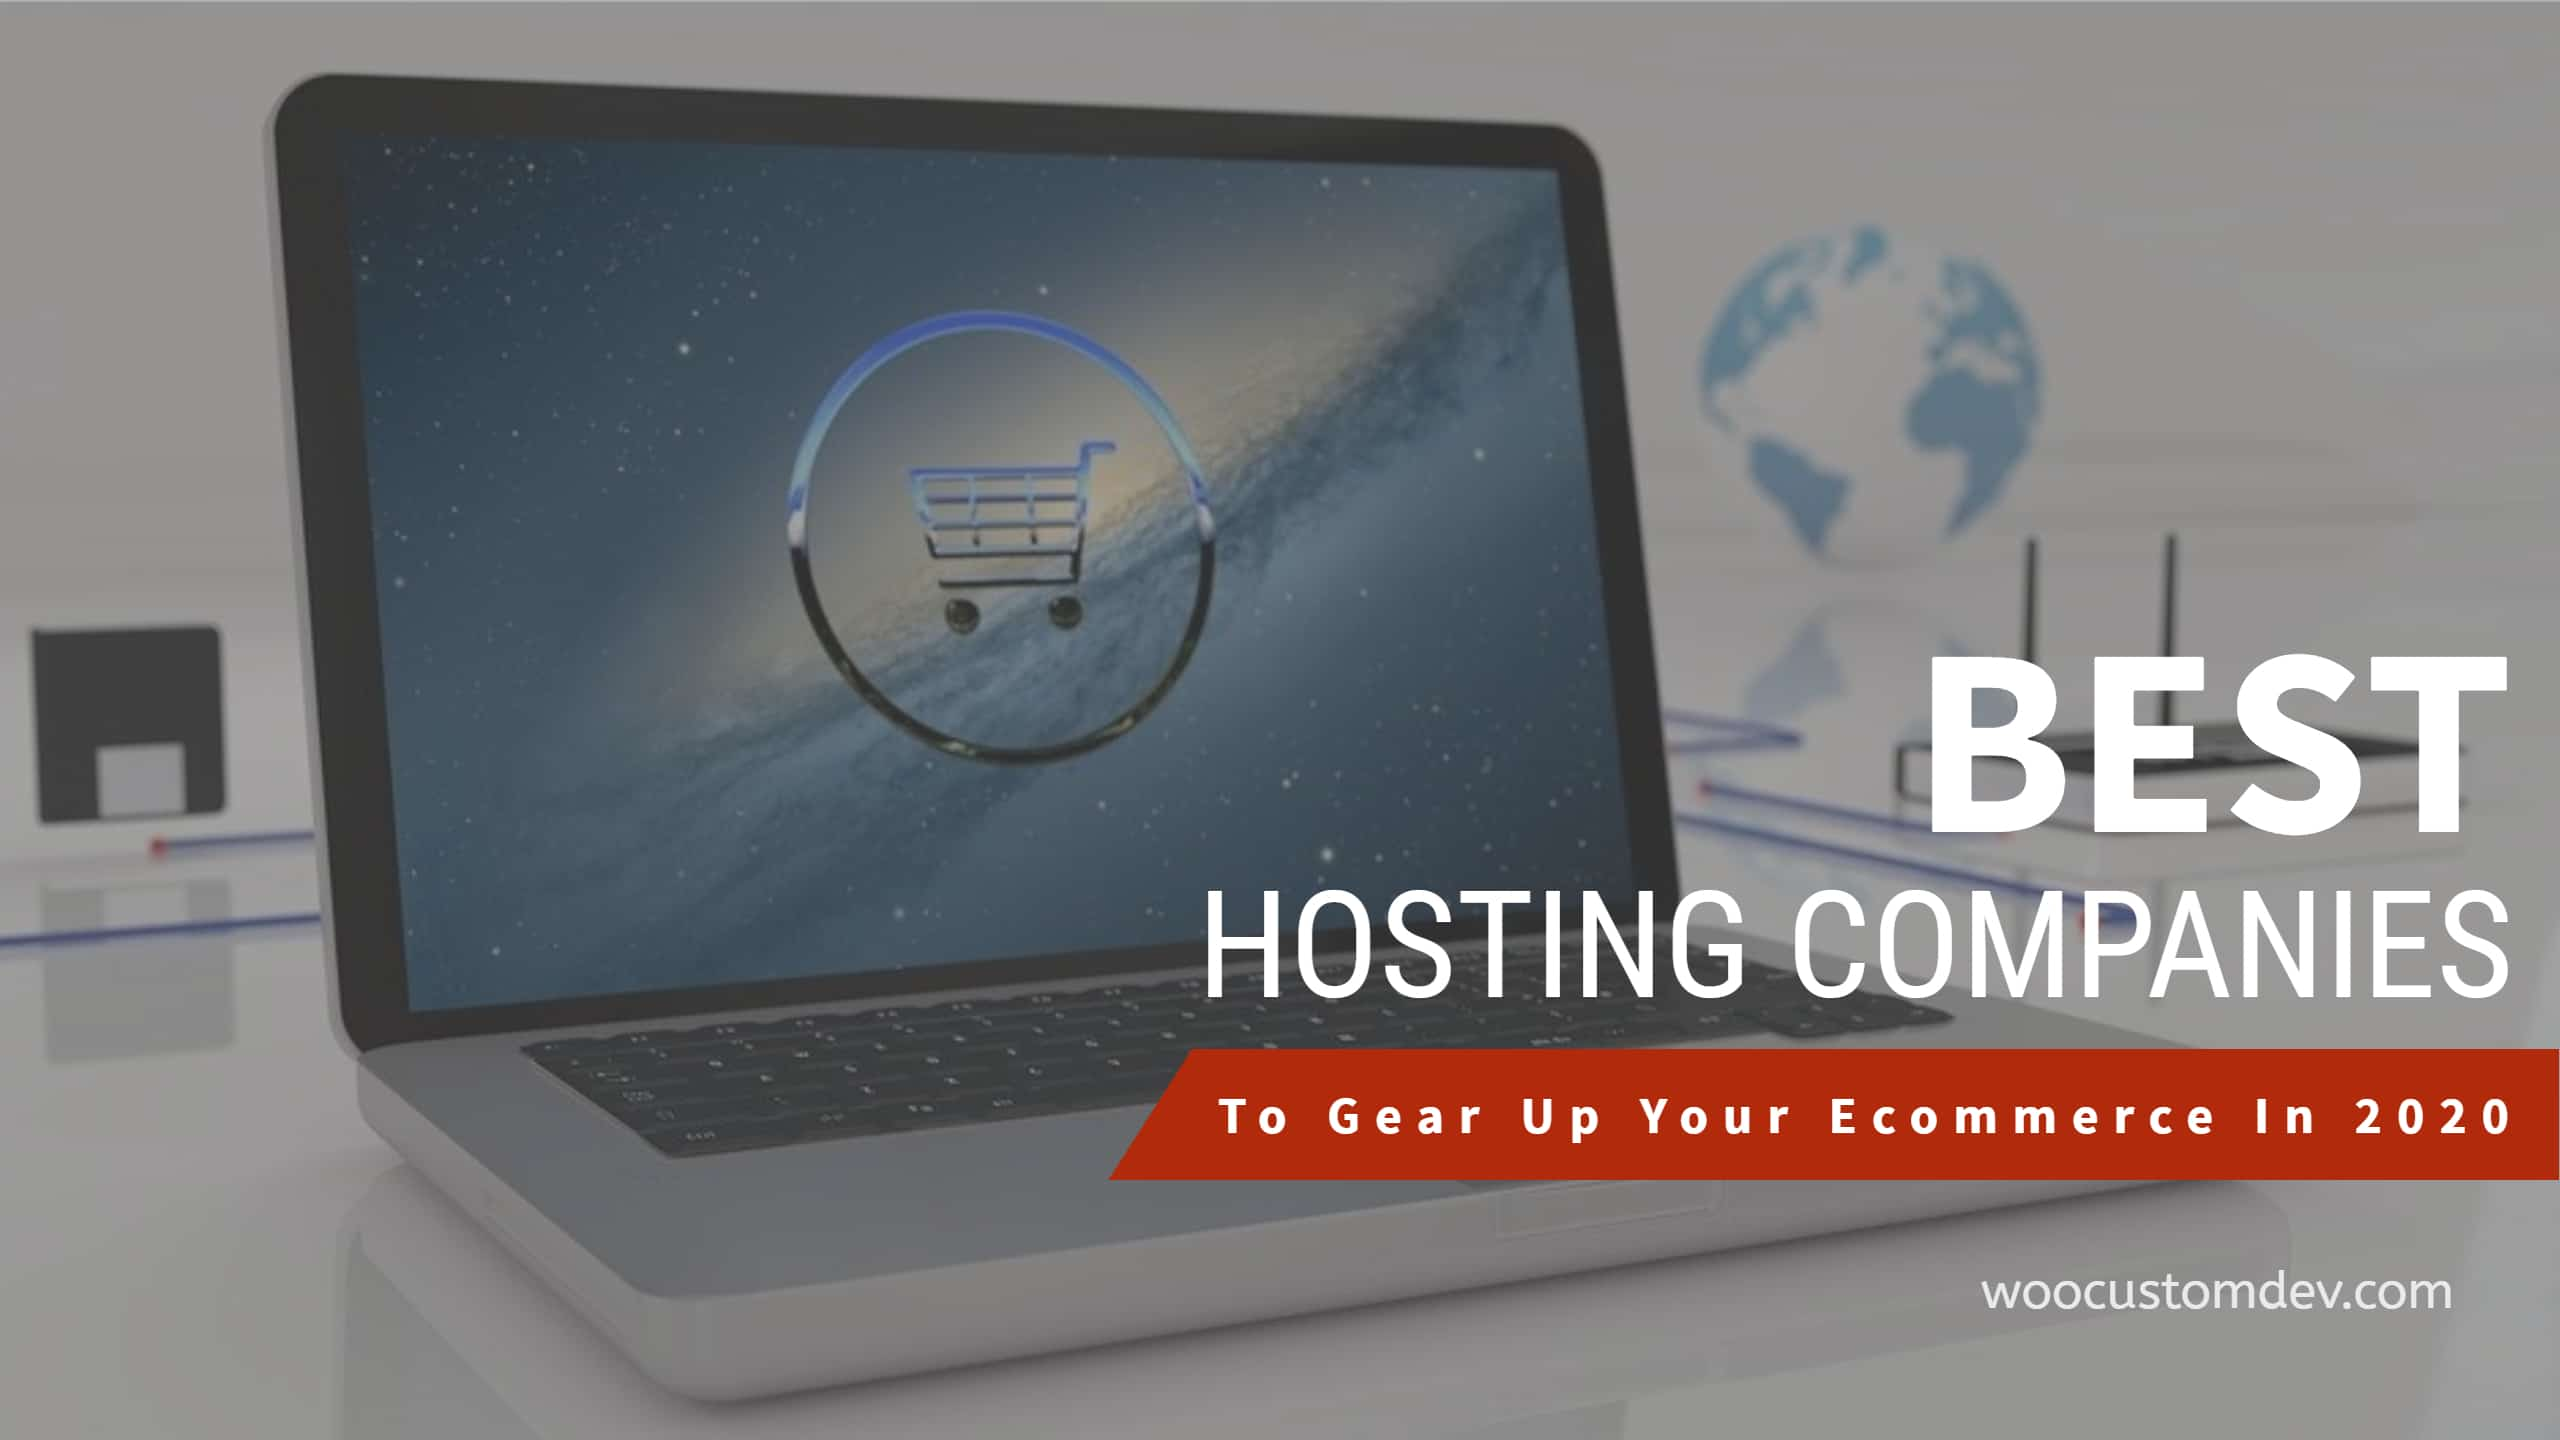 Best Hosting Companies To Gear Up Your Ecommerce In 2020